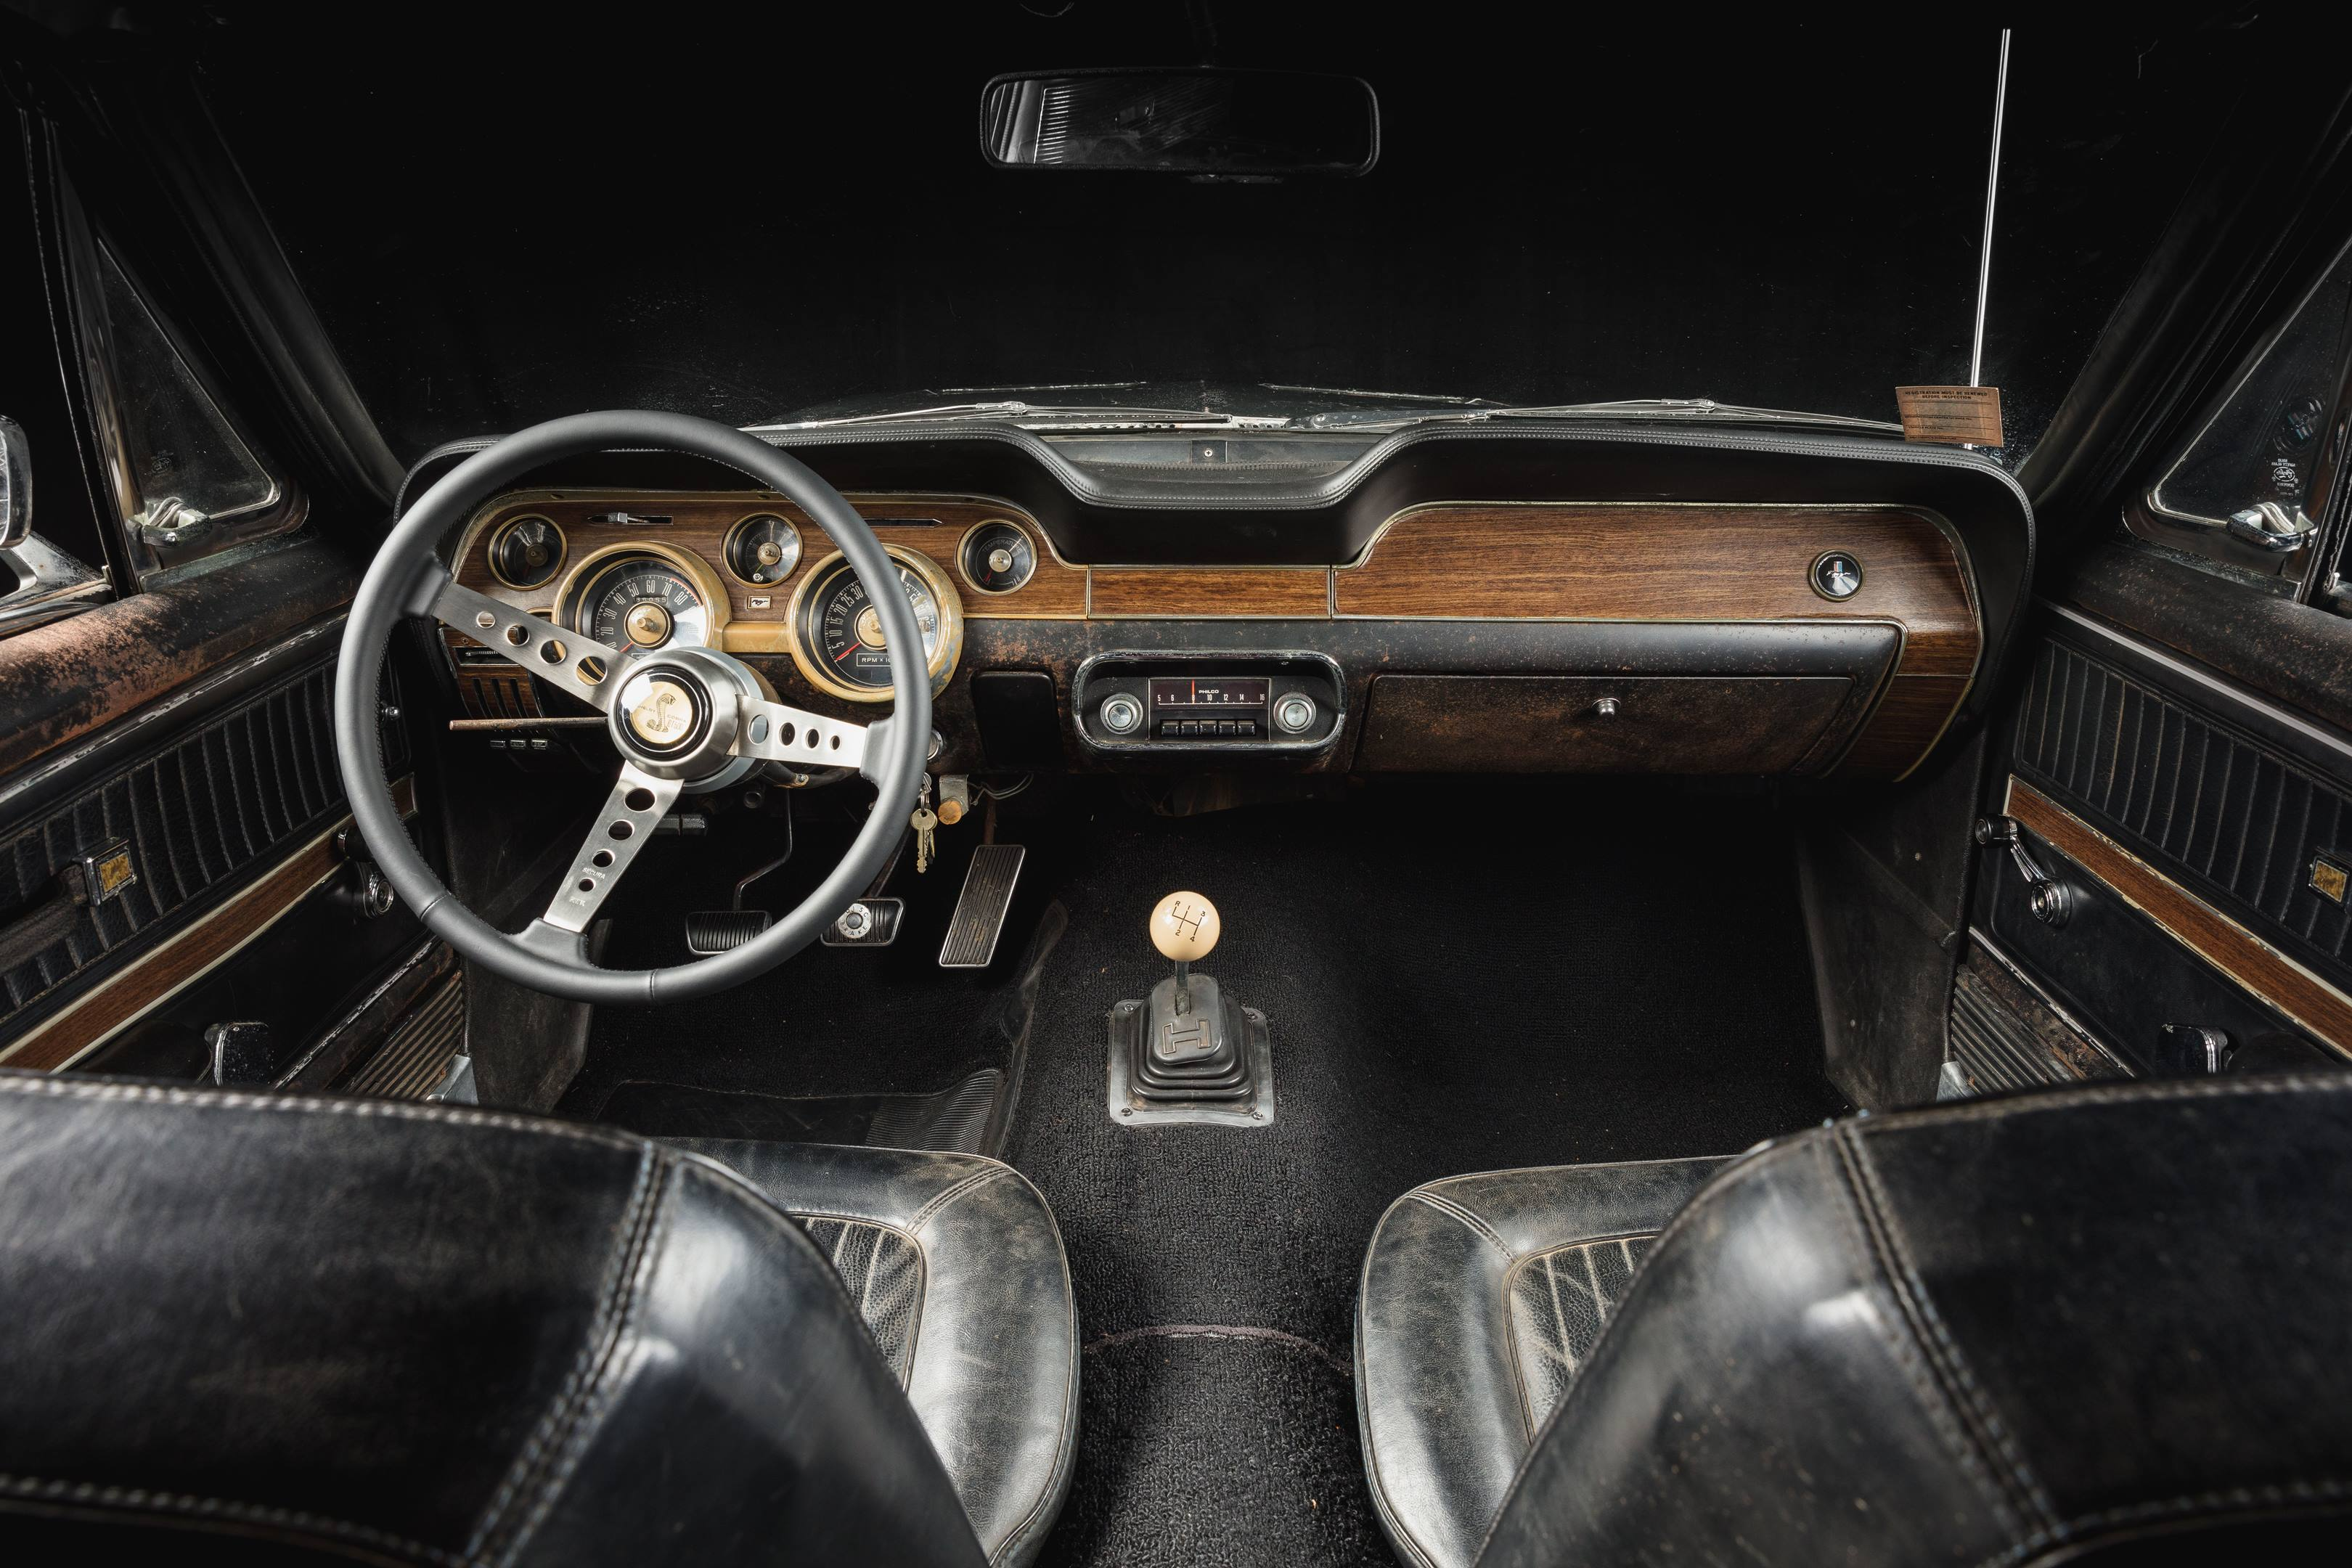 Bullitt Mustang interior from the back seat